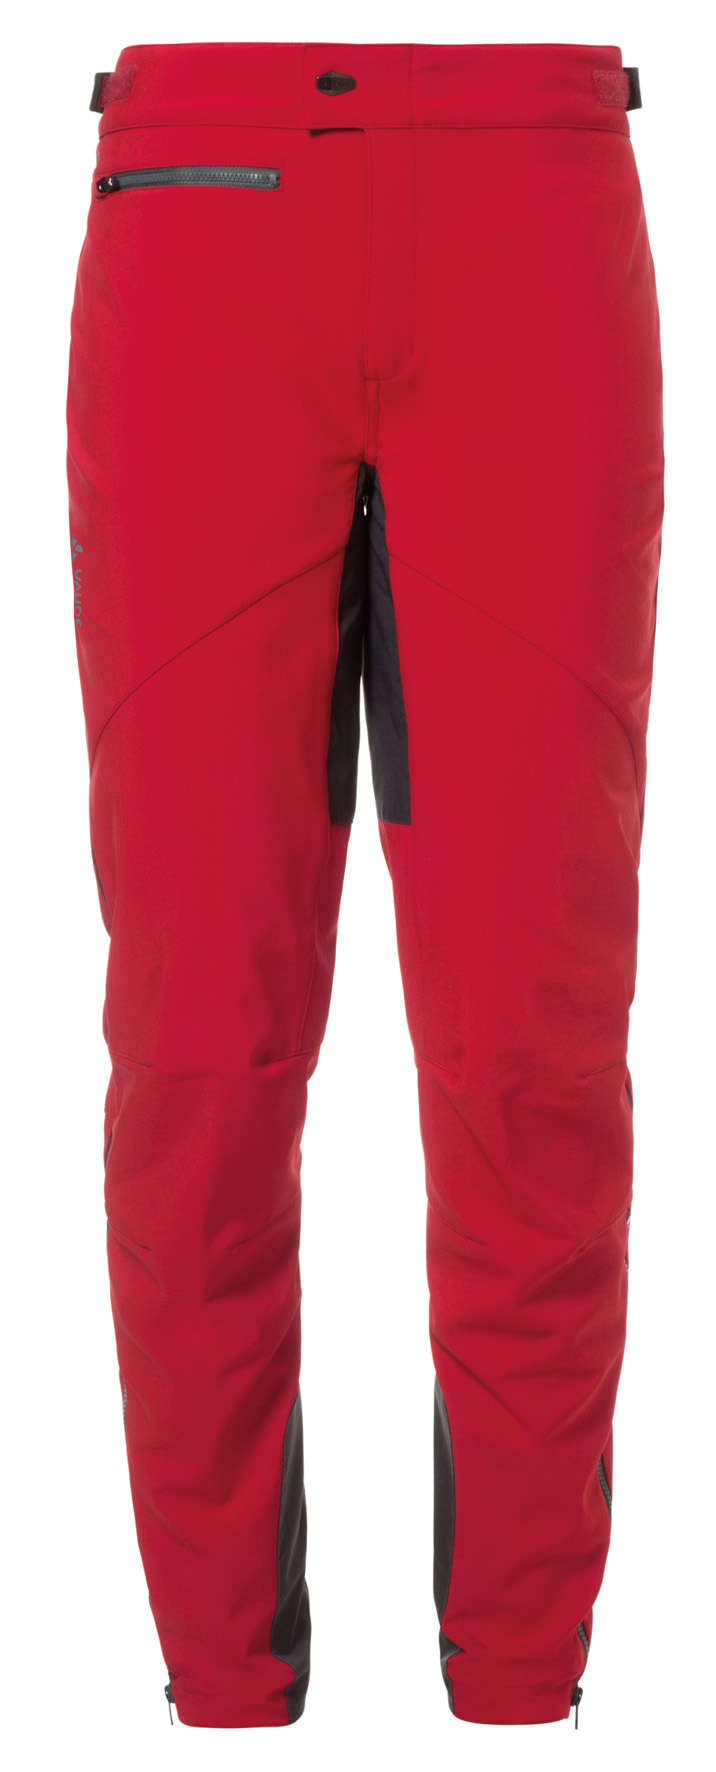 VAUDE Women´s Qimsa Softshell Pants indian red Größe 34 - schneider-sports